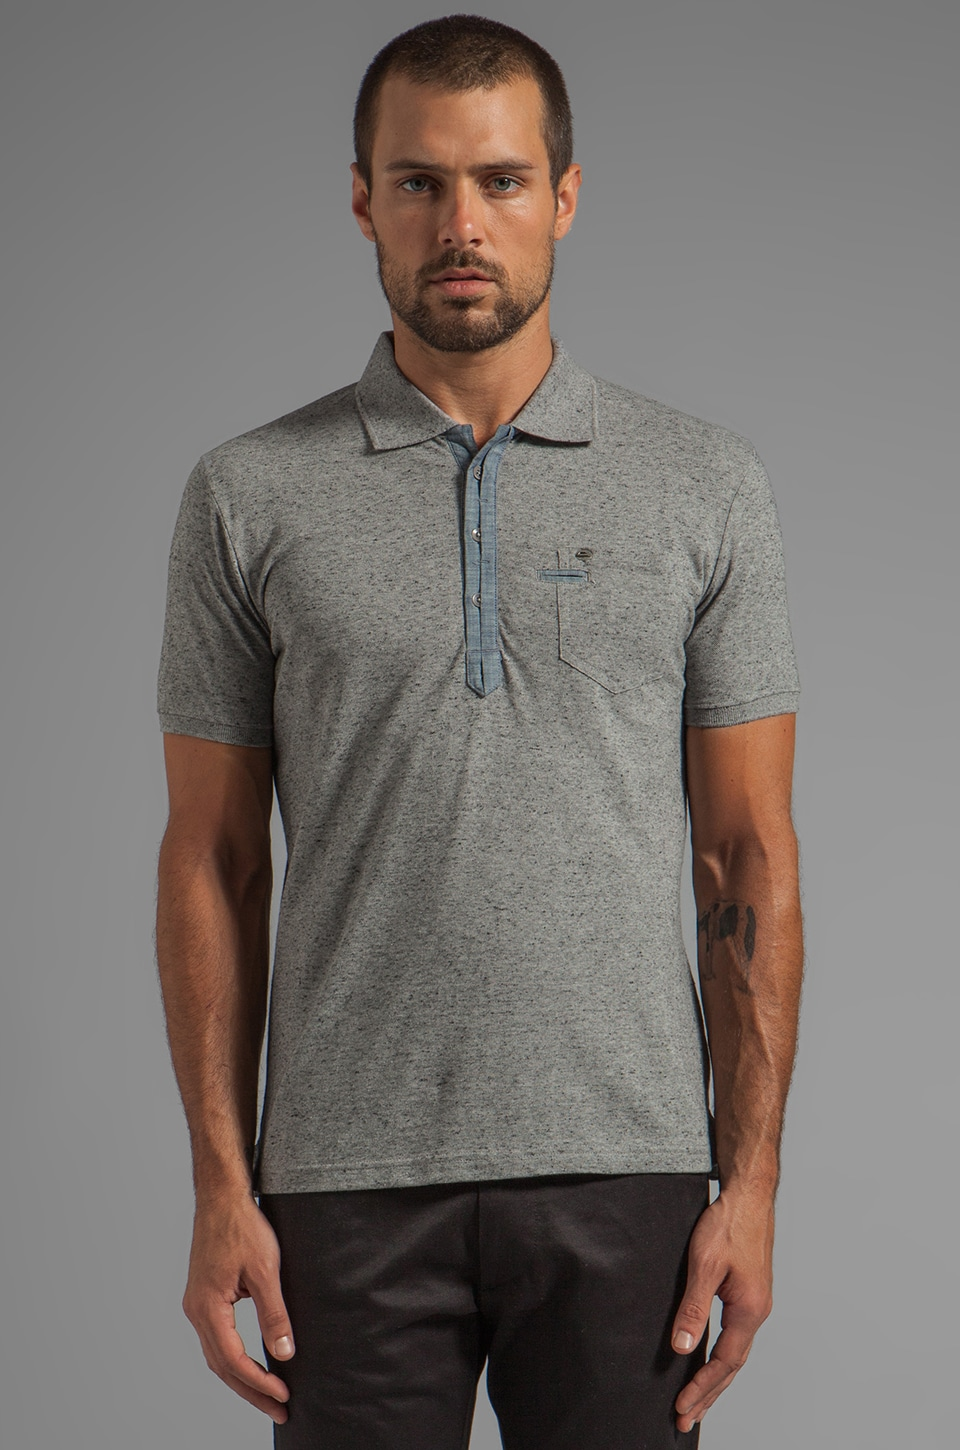 Diesel Admiral Shirt in Charcoal/Grey